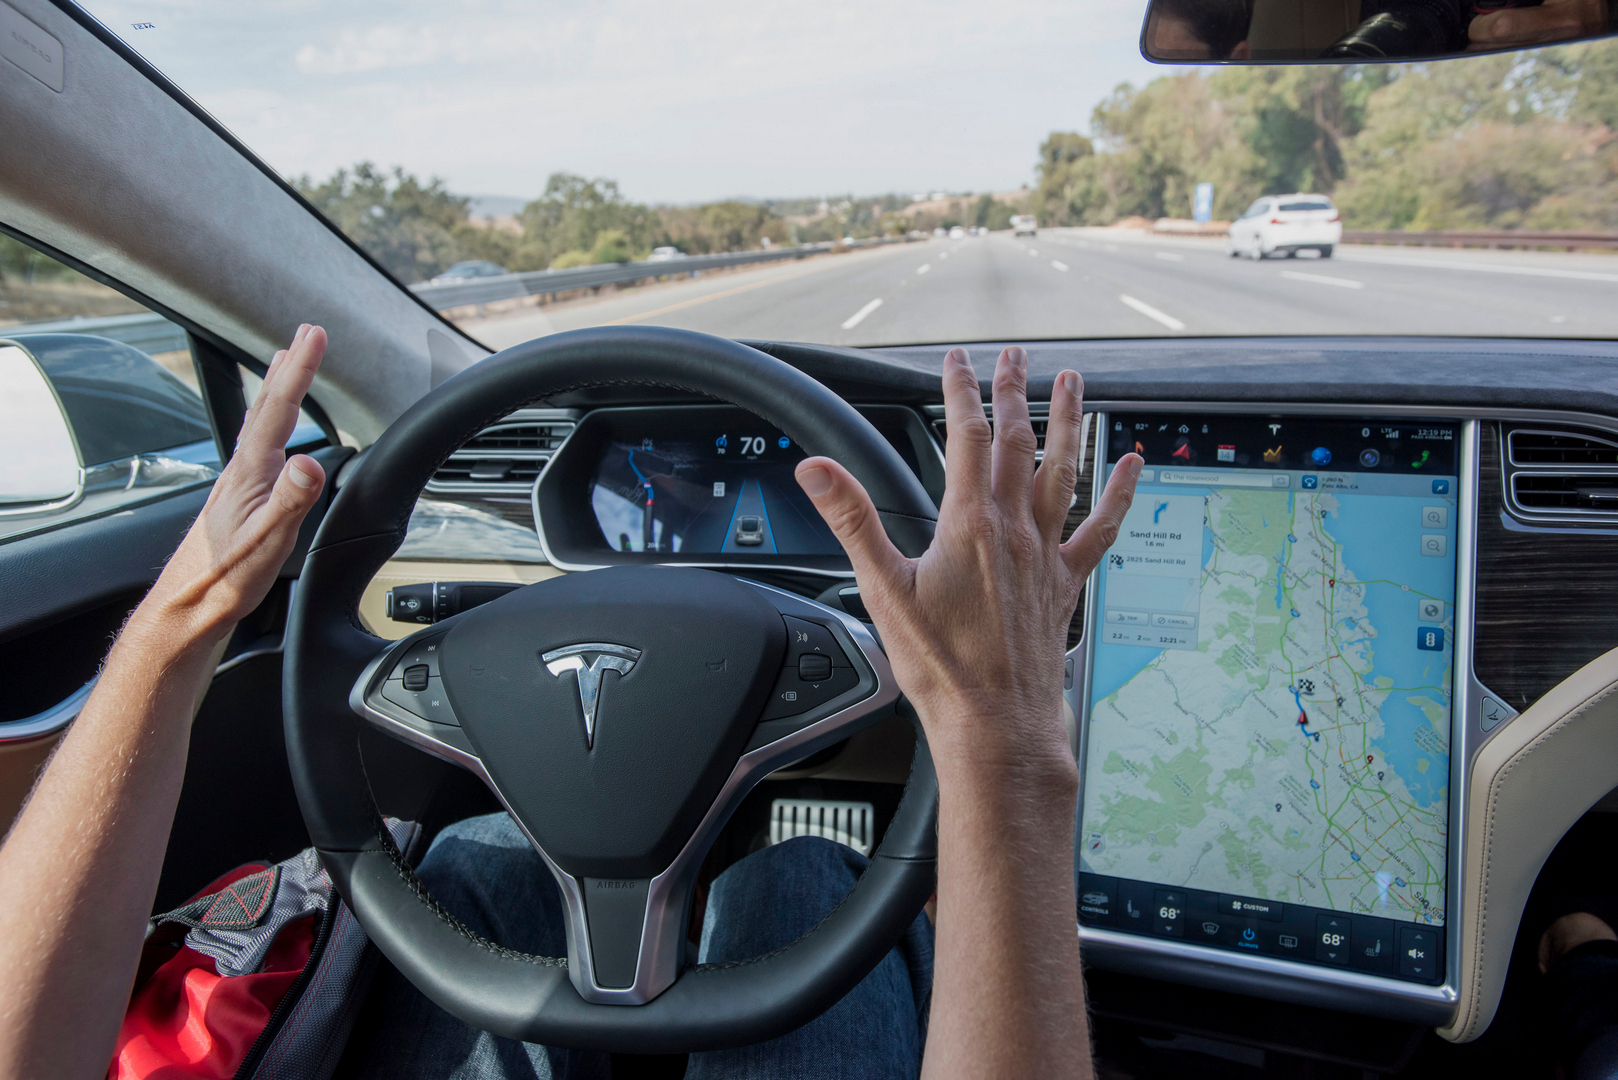 """Last February, Tesla CEO promised us a """"fully autonomous car"""" by late 2020. He now remembered about his promise, reassuring us that the breakthrough is """"very close."""""""